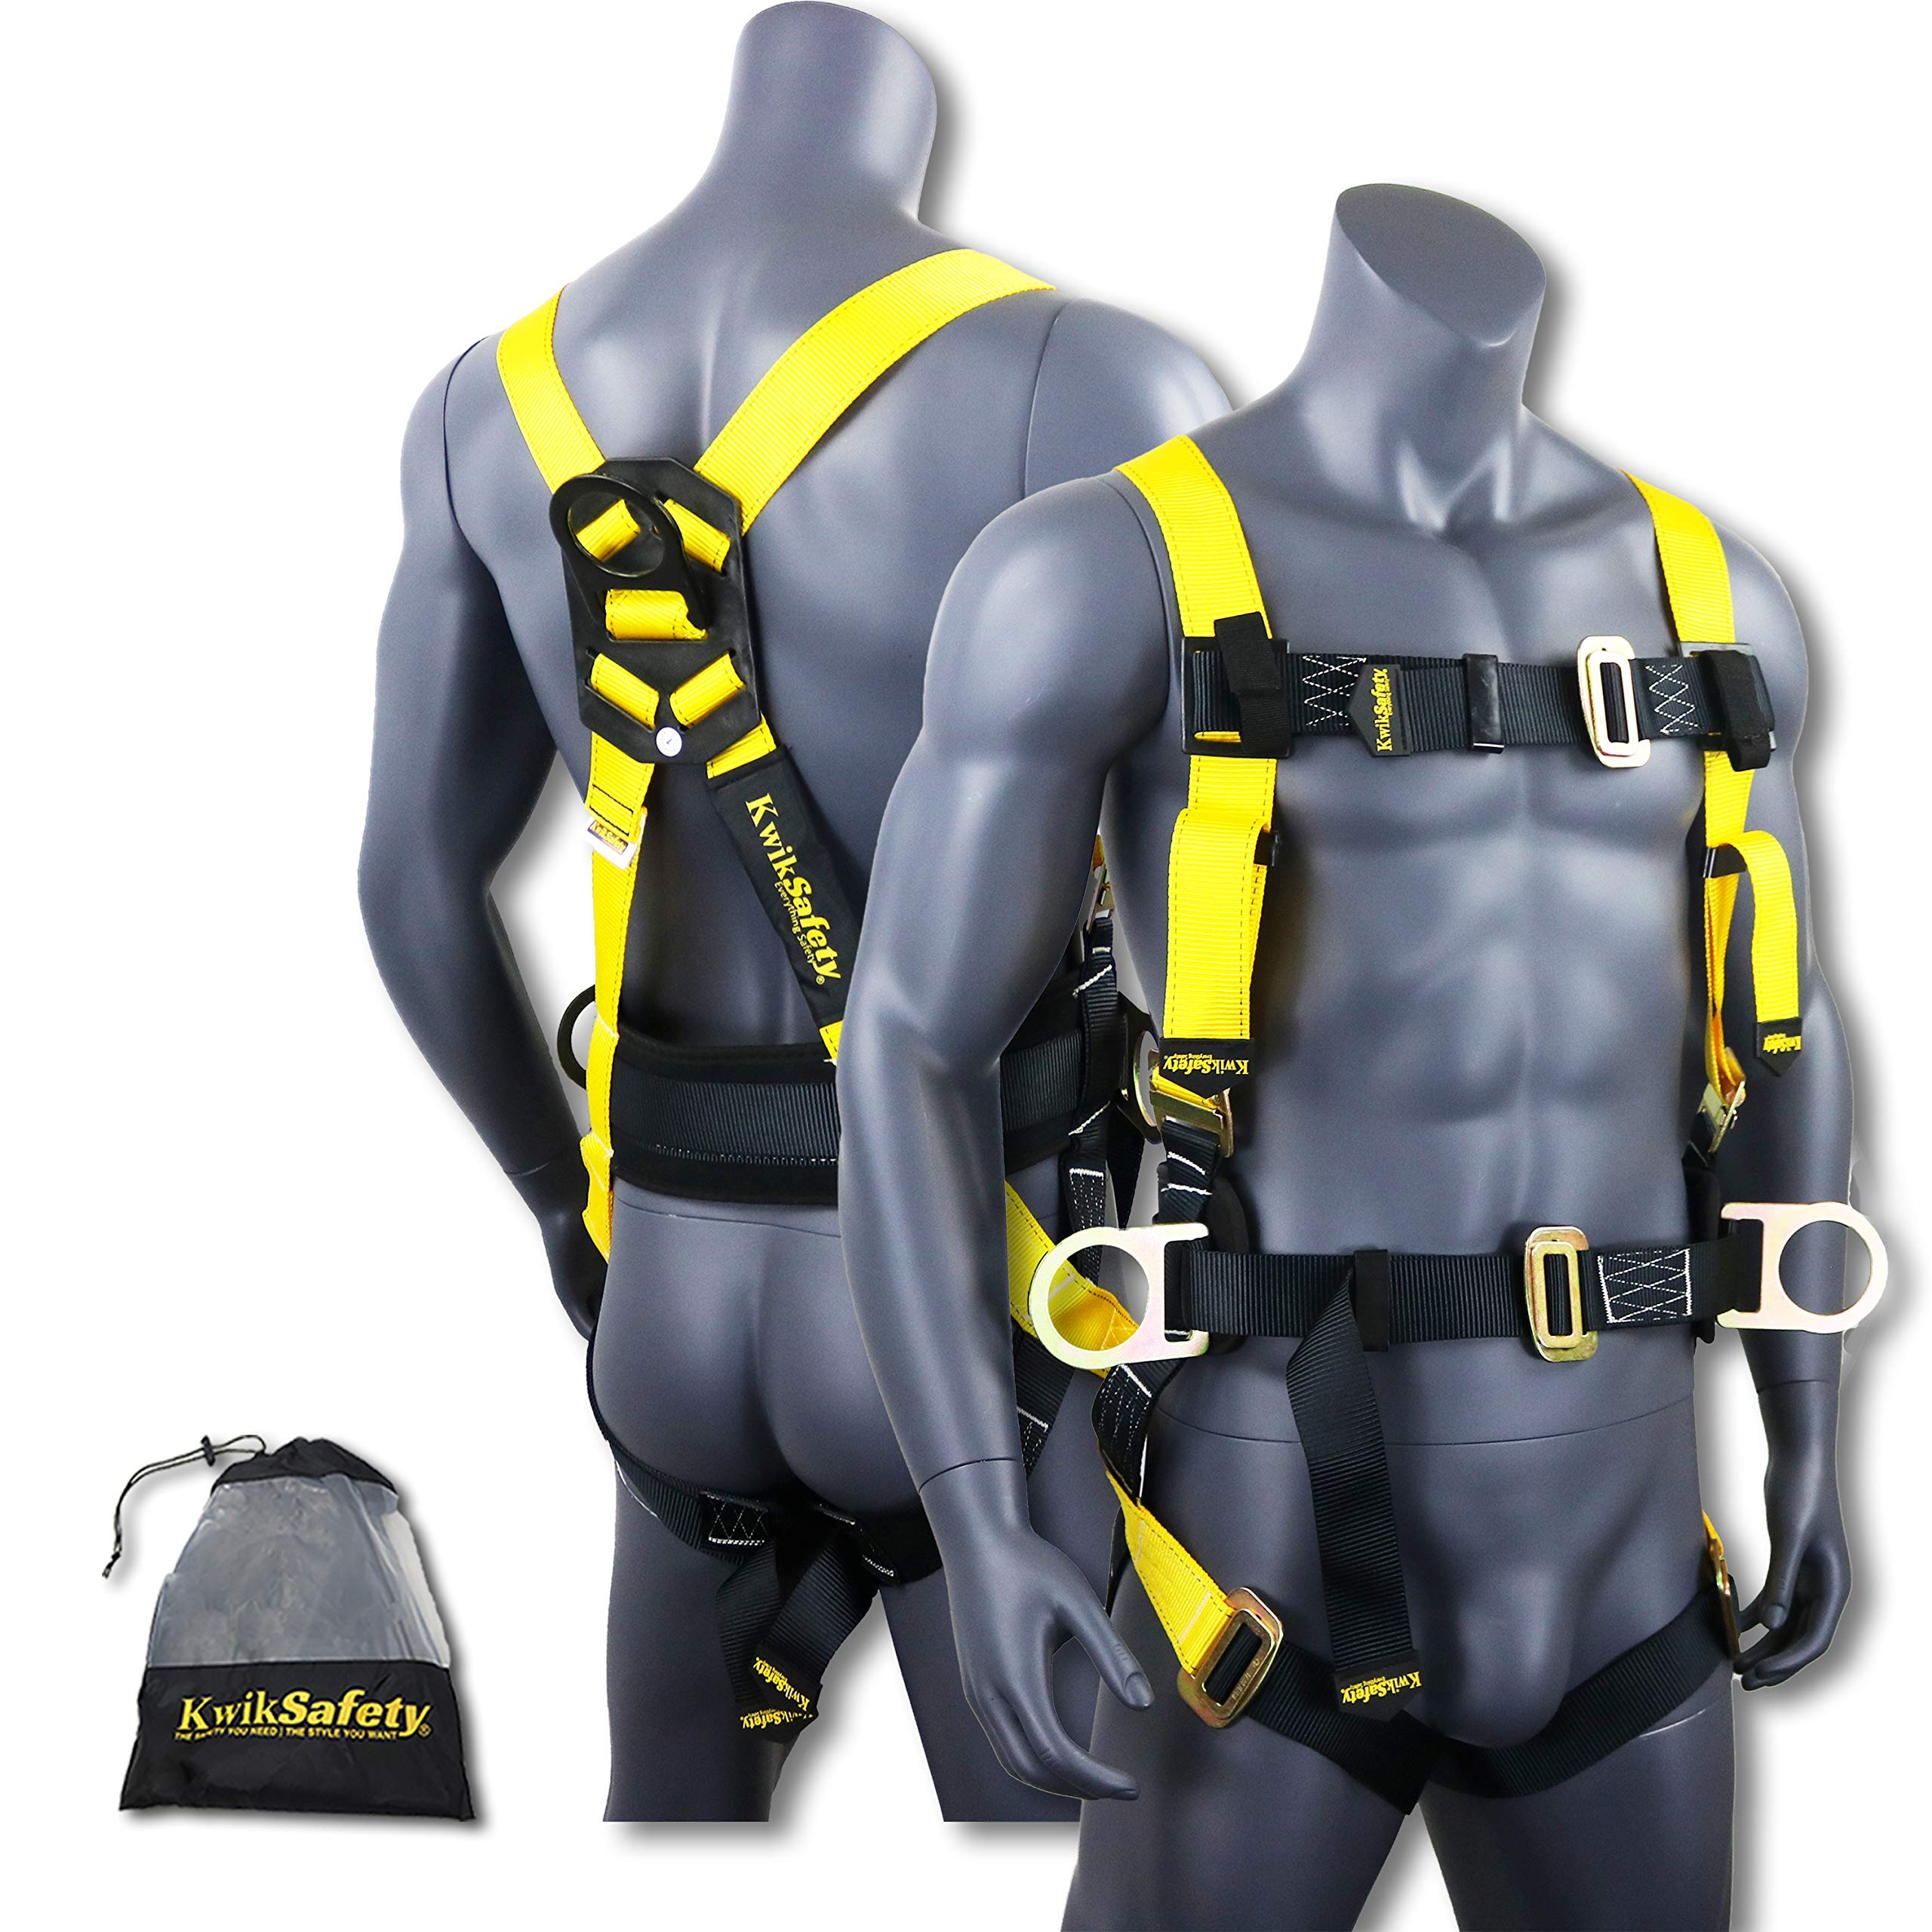 KwikSafety HURRICANE | OSHA ANSI Fall Protection Full Body Safety Harness w/Back Support | Personal Protective Equipment | Dorsal Ring Side D-Rings | Universal Construction Industrial Roofing Tool by KwikSafety (Image #1)